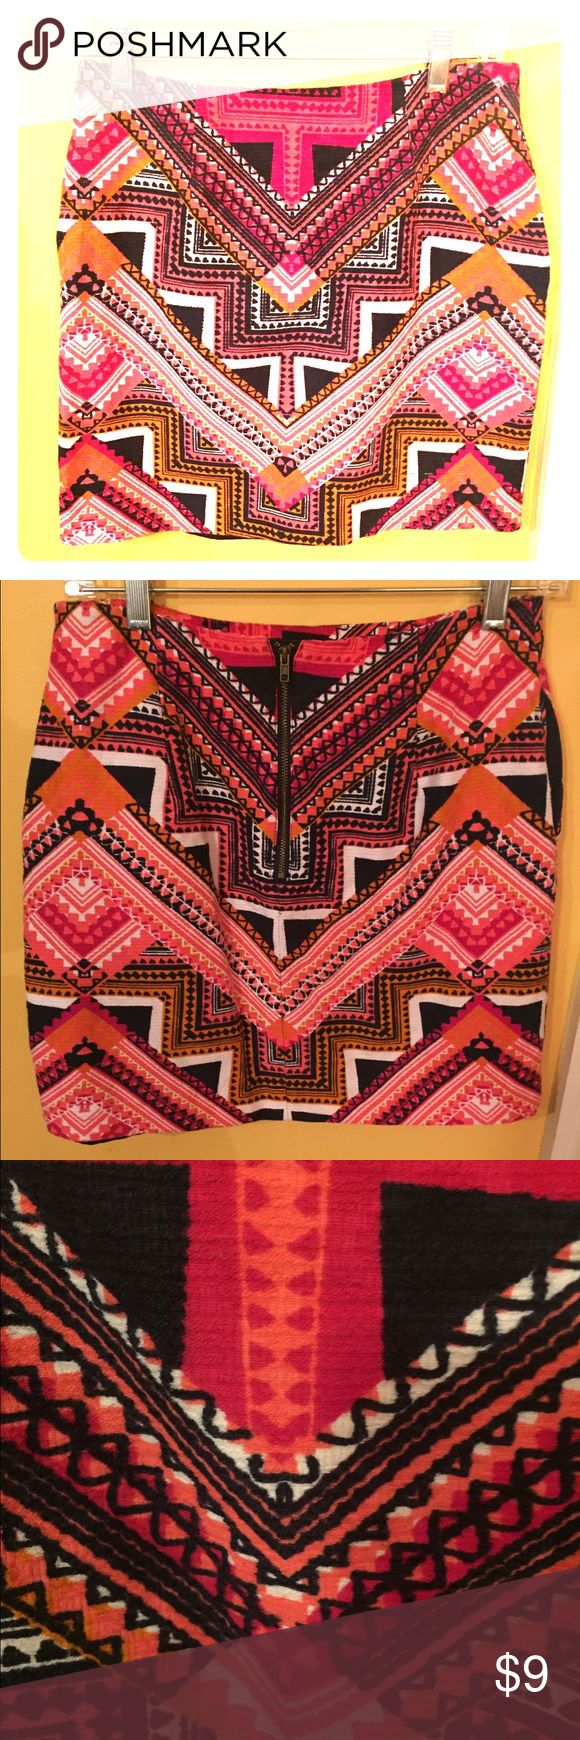 Tribal print skirt Woven tribal pinskirt.  Comes to about mid thigh, can wear to work or for a night out.  Zipper in the back Merona Skirts Pencil